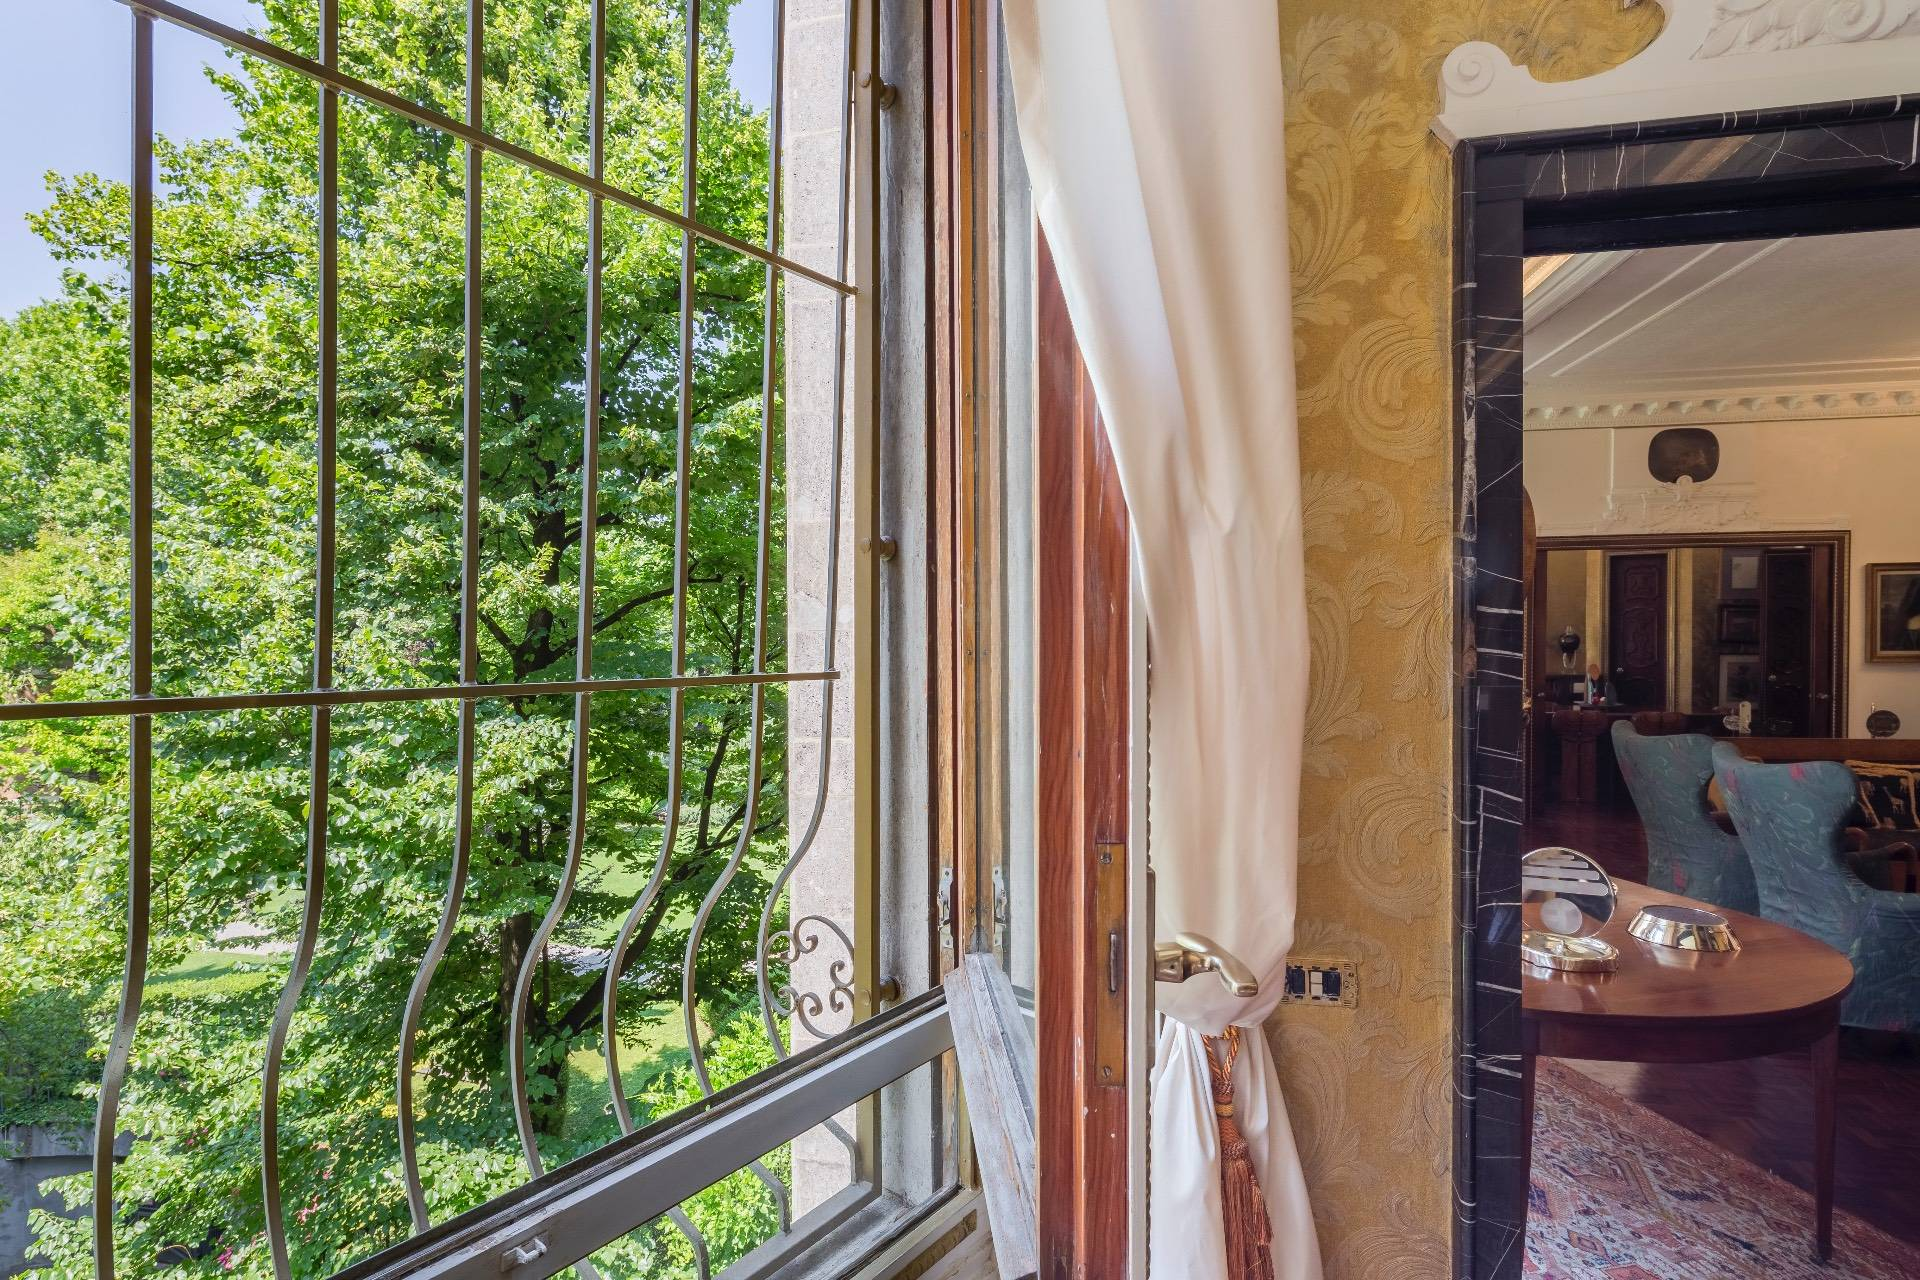 Charming and exclusive property overlooking the Borromeo gardens - 8